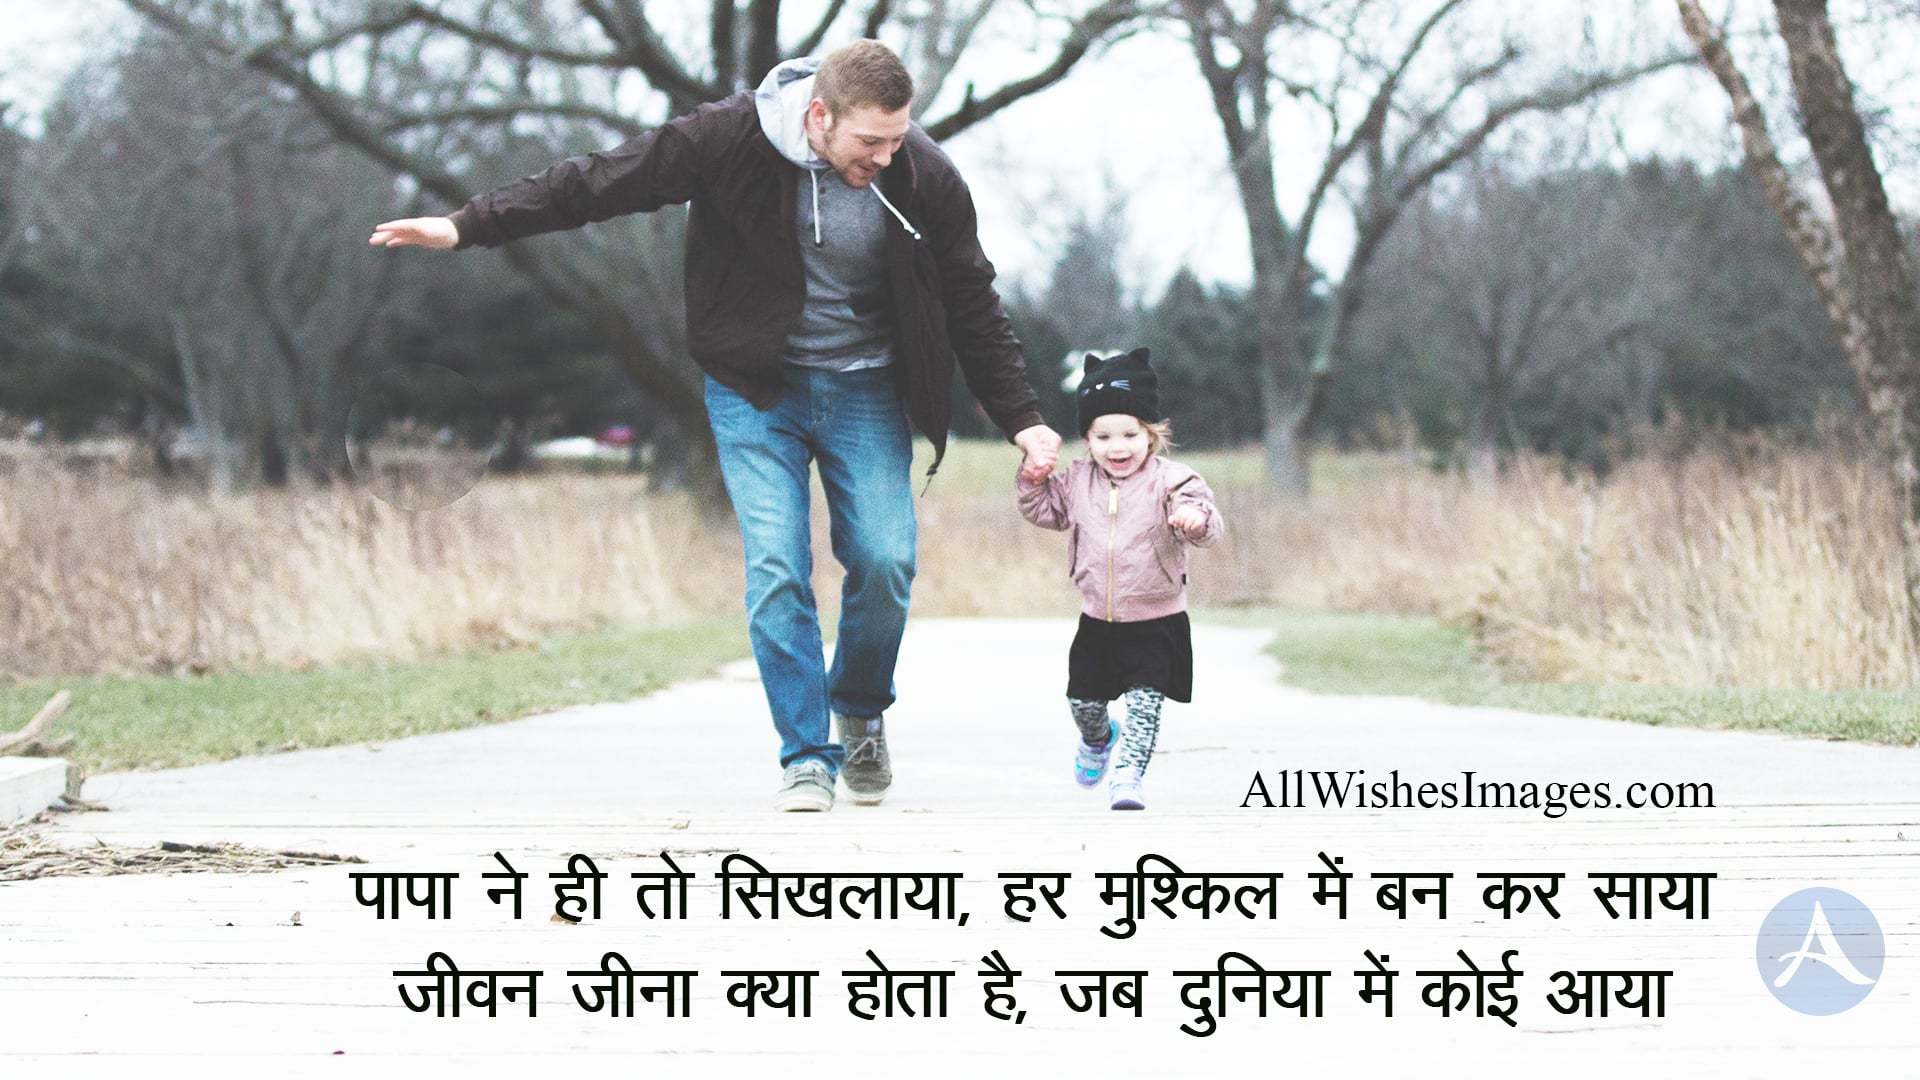 Father And Daughter Images With Quotes In Hindi 2020